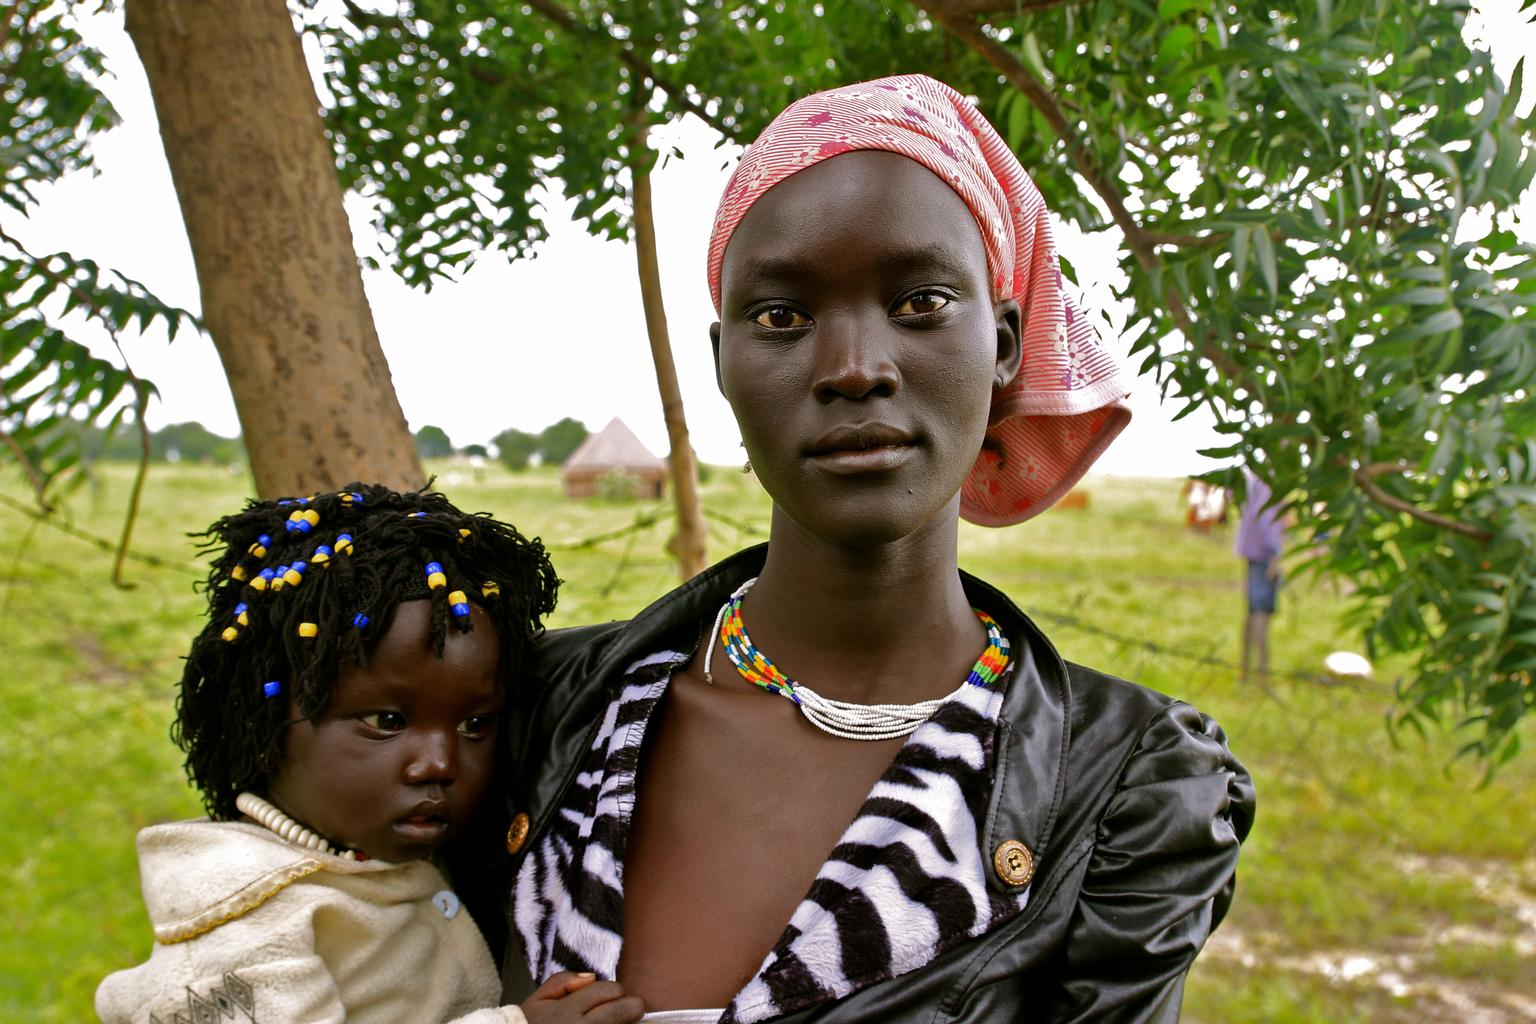 Nyamouch and her daughter, Nyabiel Chuol, in Kiech , South Sudan, where UNICEF and partners are assisting displaced people affected by the conflict.